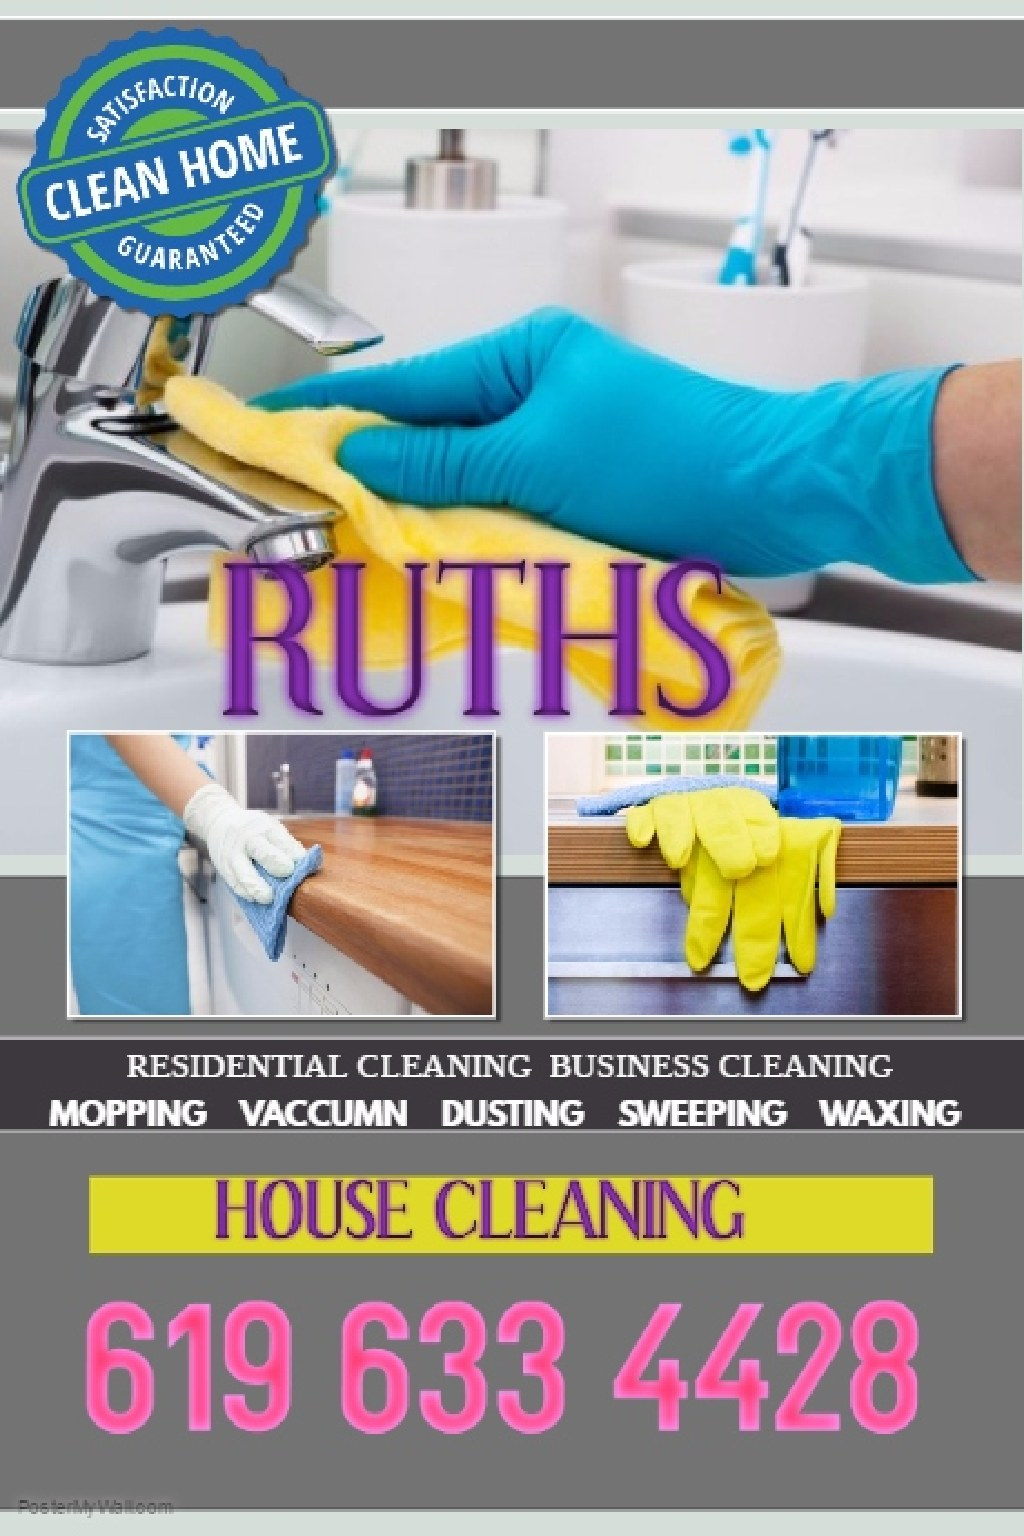 RUTHS HOUSE CLEANING